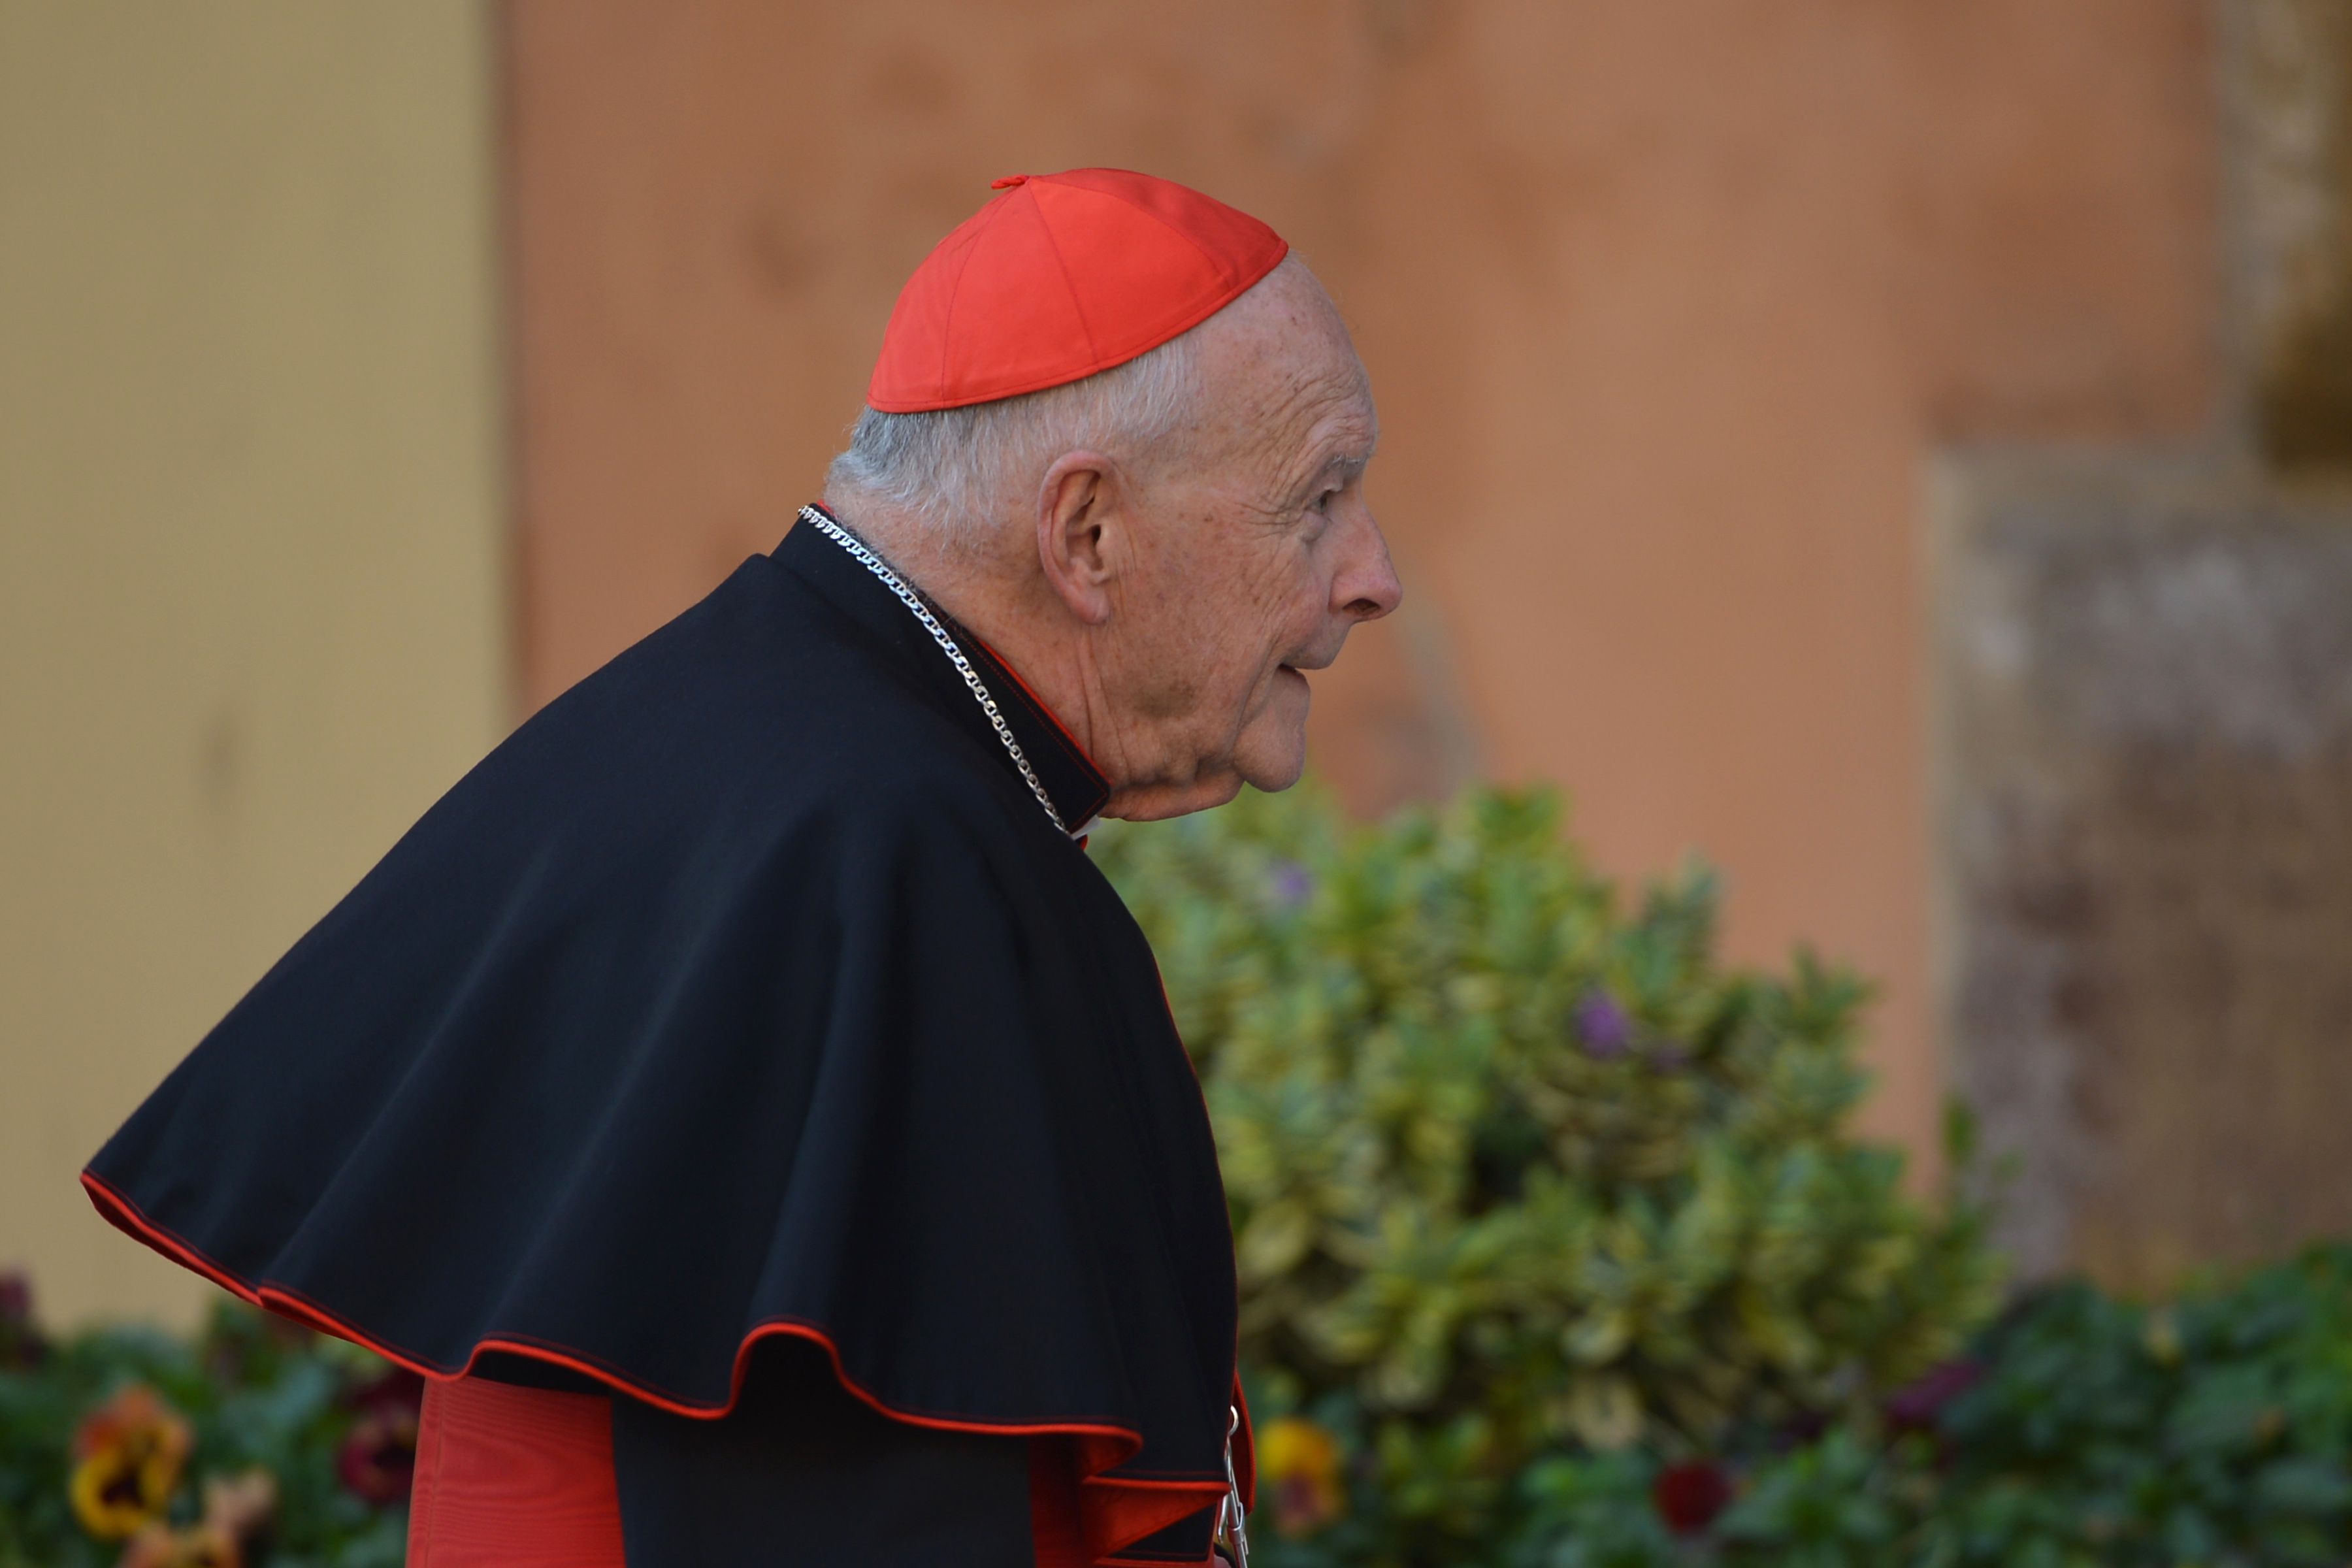 US cardinal Edgar Theodore McCarrick arrives for talks ahead of a conclave to elect a new pope on March 4, 2013 at the Vatican. The Vatican meetings will set the date for the start of the conclave this month and help identify candidates among the cardinals to be the next leader of the world's 1.2 billion Catholics. AFP PHOTO / VINCENZO PINTO (Photo credit should read VINCENZO PINTO/AFP/Getty Images)